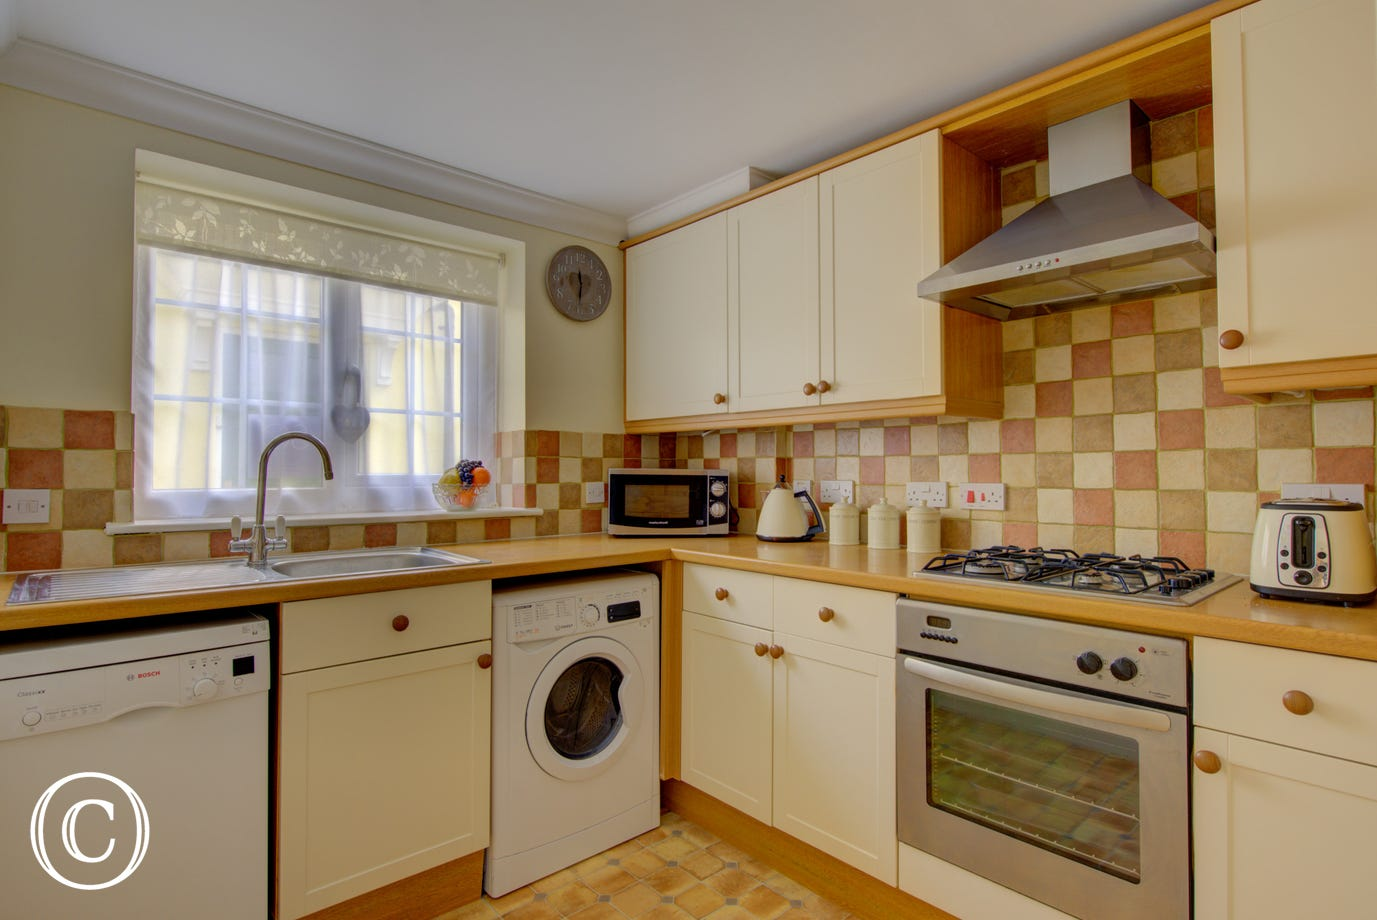 This warm beige coloured kitchen has all one will need for their self cater stay at Wisteria Cottage.